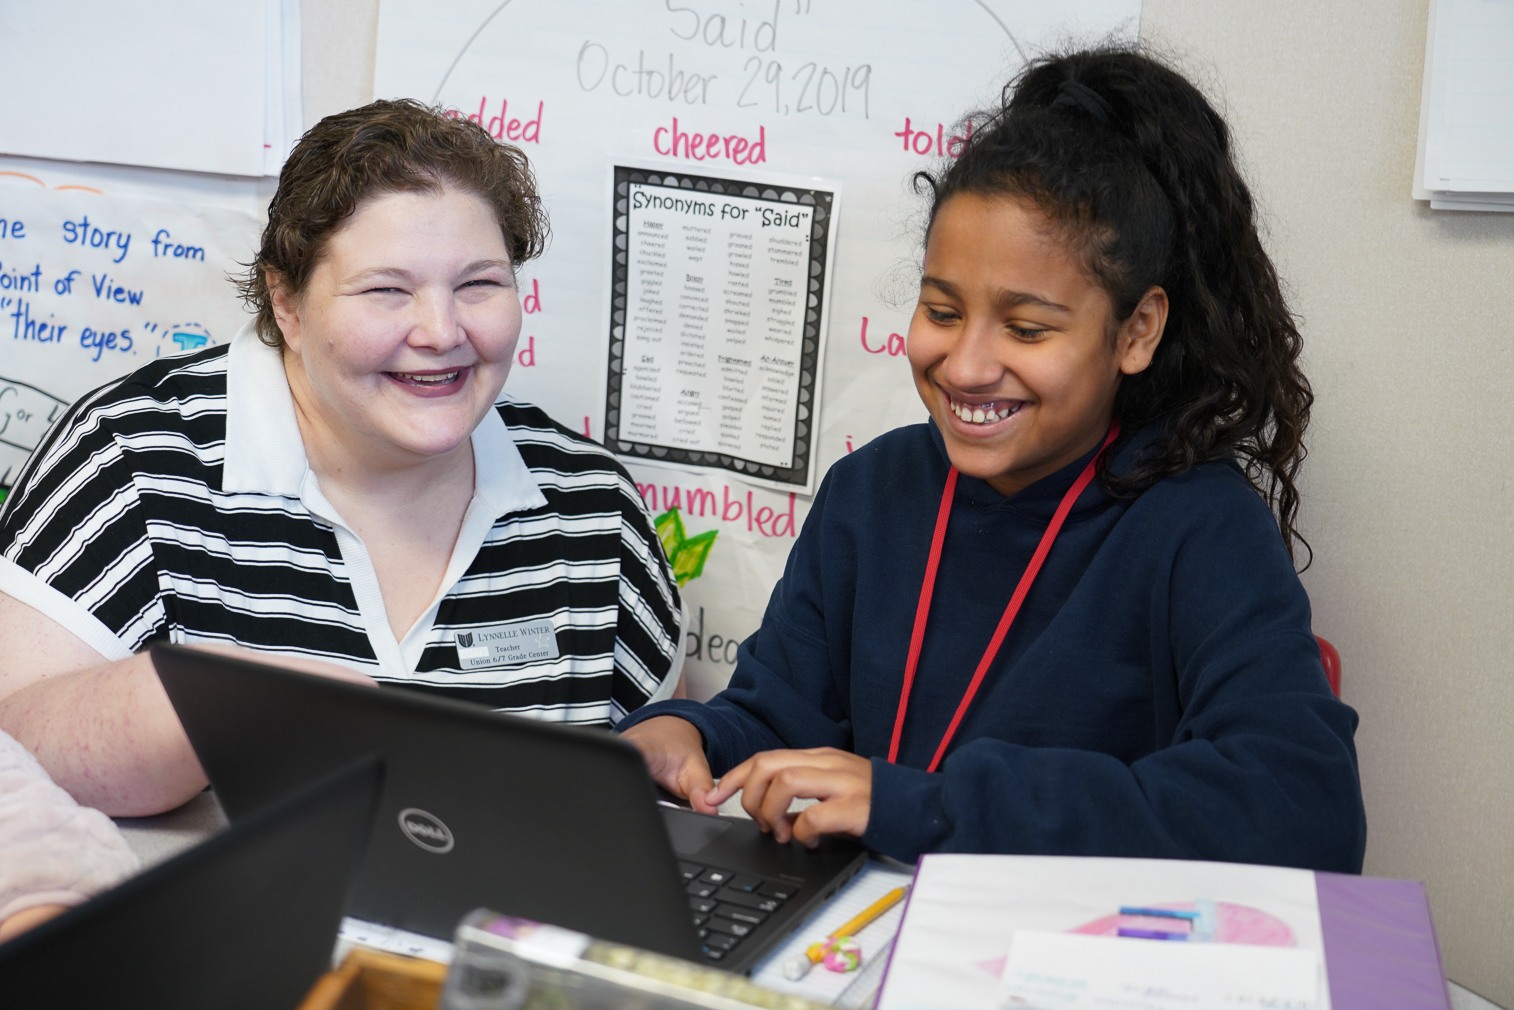 """6th Grade Center – Lynnelle Winter, Language Arts  Language Arts teacher Lynnelle Winter has been named the Union 6th Grade Teacher of the Year for 2019-2020.  Winter said she can remember going to a new school in first grade and not being able to read.  """"The teacher and principal wanted to hold me back, but my mom wouldn't let them. Instead she and I would work every evening on reading. I can still remember sitting at the table struggling to read the words,"""" Winter said. """"Once I learned how to read, it opened up a whole new world for me. I went from a struggling reader to a voracious reader in two school years.     """"Now as a sixth grade teacher, I love that I am here to help students navigate from elementary to their new stage in the journey of education-secondary. Middle school is hard for a variety of reasons. Students all need to feel loved and supported. This is why I teach this age group.  Adolescence is a hard time period, I know many of us would not want to relive those years. But, maybe, my sixth grade Cornell Students can have a positive first experience with their secondary education. I want their years 'in the middle' to be ones filled with positivity, acceptance, and love."""" Winter said her favorite subject to teach is writing.   """"I write alongside my students, so the mini-lessons I am asking them to complete I have also completed the activity or lesson,"""" she said.  """"I discuss my struggles as a writer also. It helps them realize teachers are human also and we might have areas we struggle in too.   Teaching sixth graders how to appropriately use their voice is empowering.  When they realize their words have the power to  change procedures, someone's thinking,  or mind.  It's one of the greatest roles of my job...to observe students taking risks with their thoughts or writing or voice.  And then to see the impact in students of their self- realization is so very important.  It's such an honor to witness it.""""    Winter started teaching in August 2013.  """"(Th"""